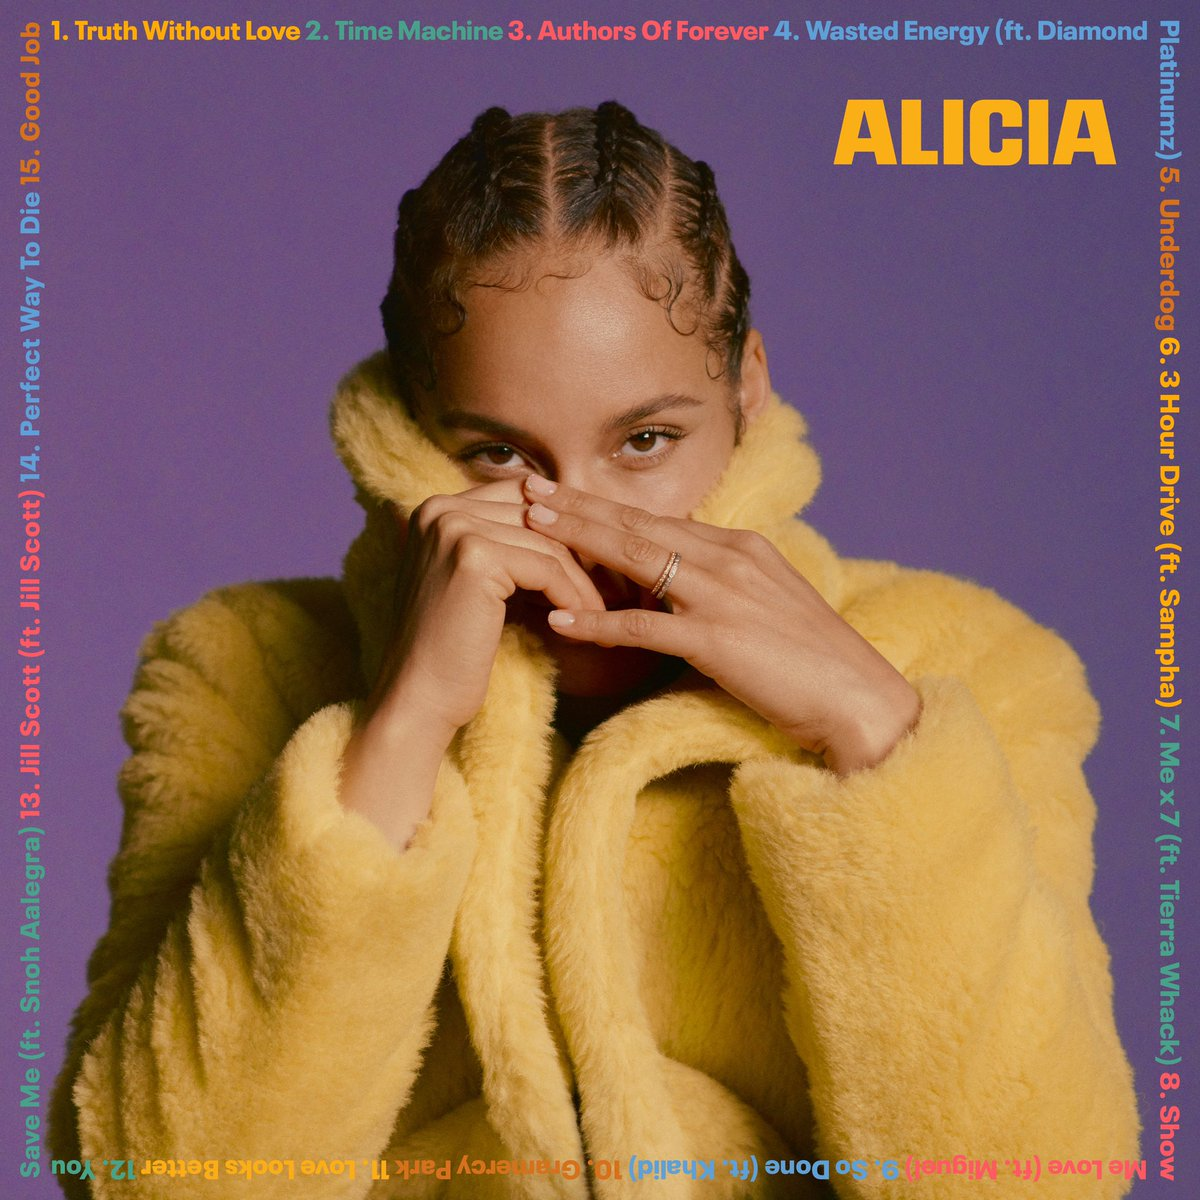 #ALICIA is out right now!! I'm grateful to share all the different sides of me with you. I'm grateful you love me as I am! Press play and let the magic begin 💜💜💜🥳🥳🥳   And tell me your favorites!! I can't wait to hear 😘😘😘